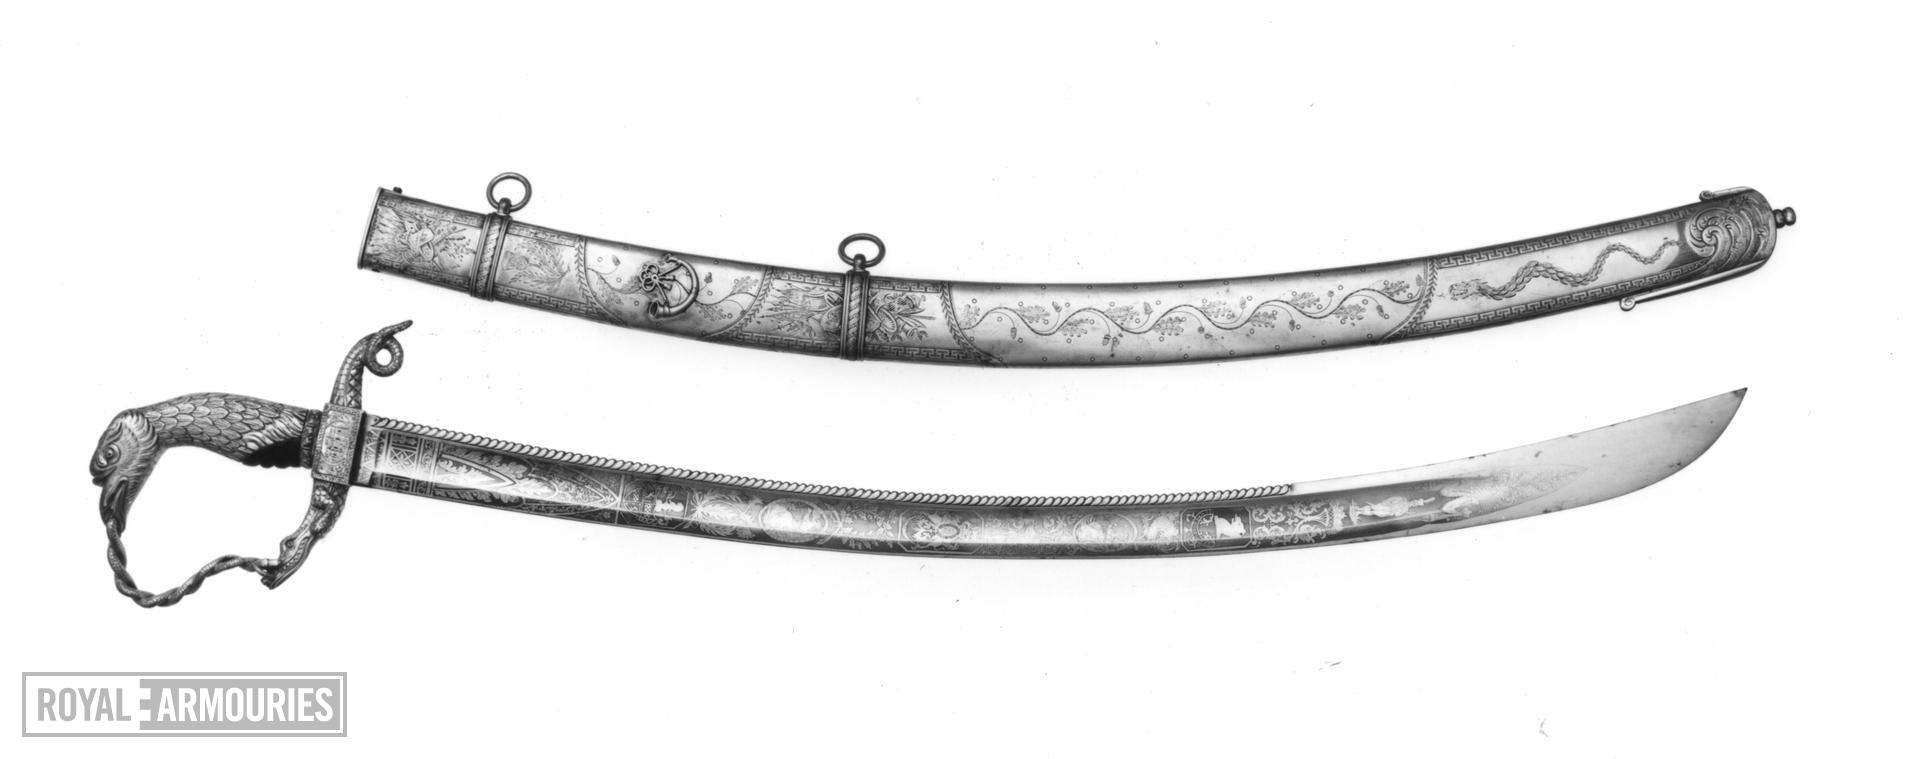 Sabre and scabbard Presentation sabre and scabbard. Presented to Hope Stewart.